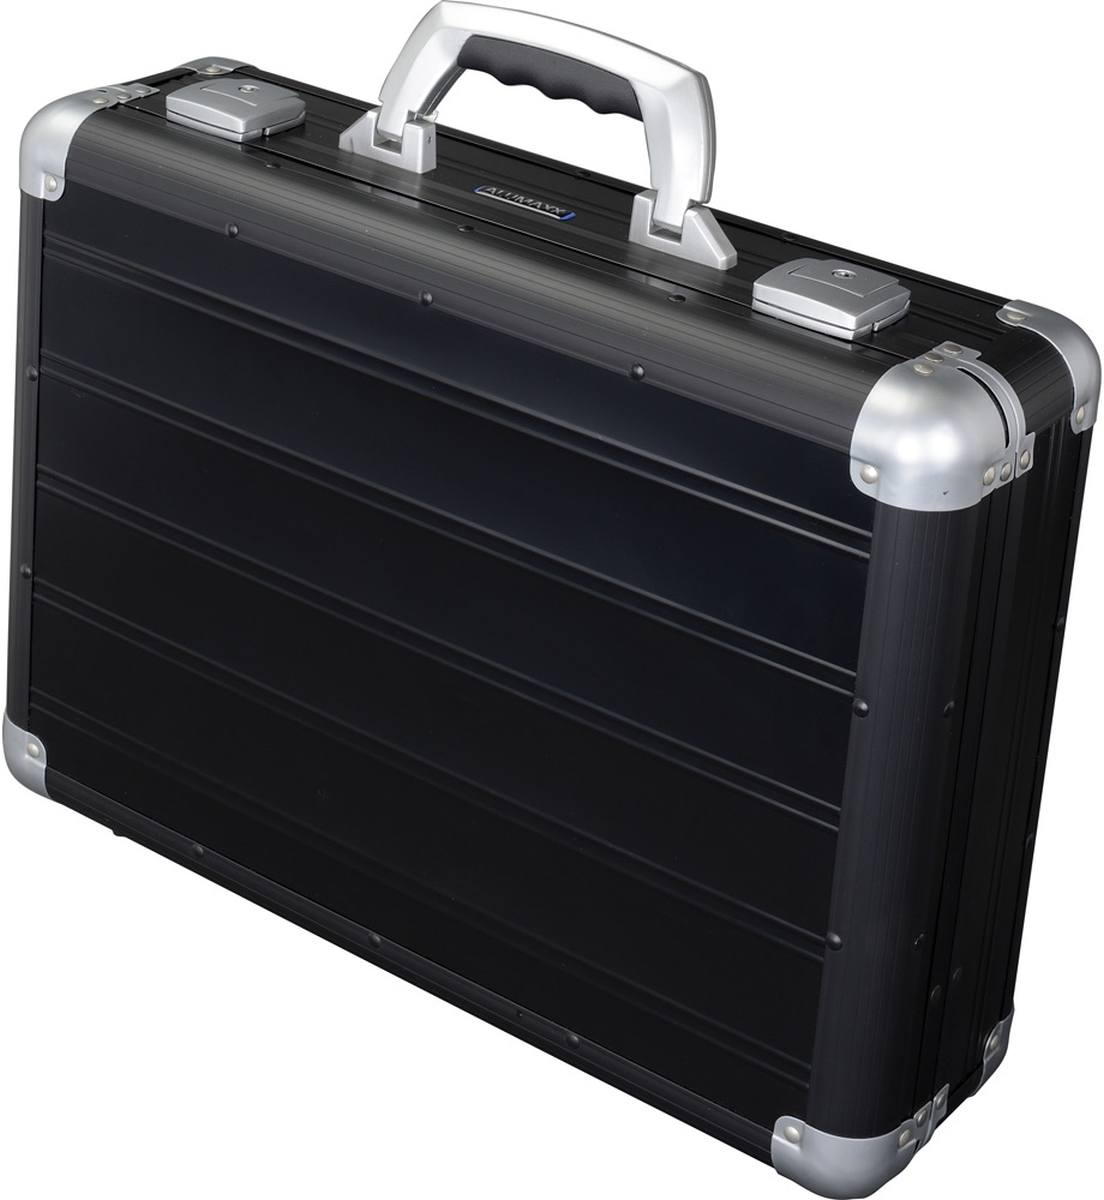 ALUMAXX Attaché Laptop case VENTURE from aluminum black | eBay